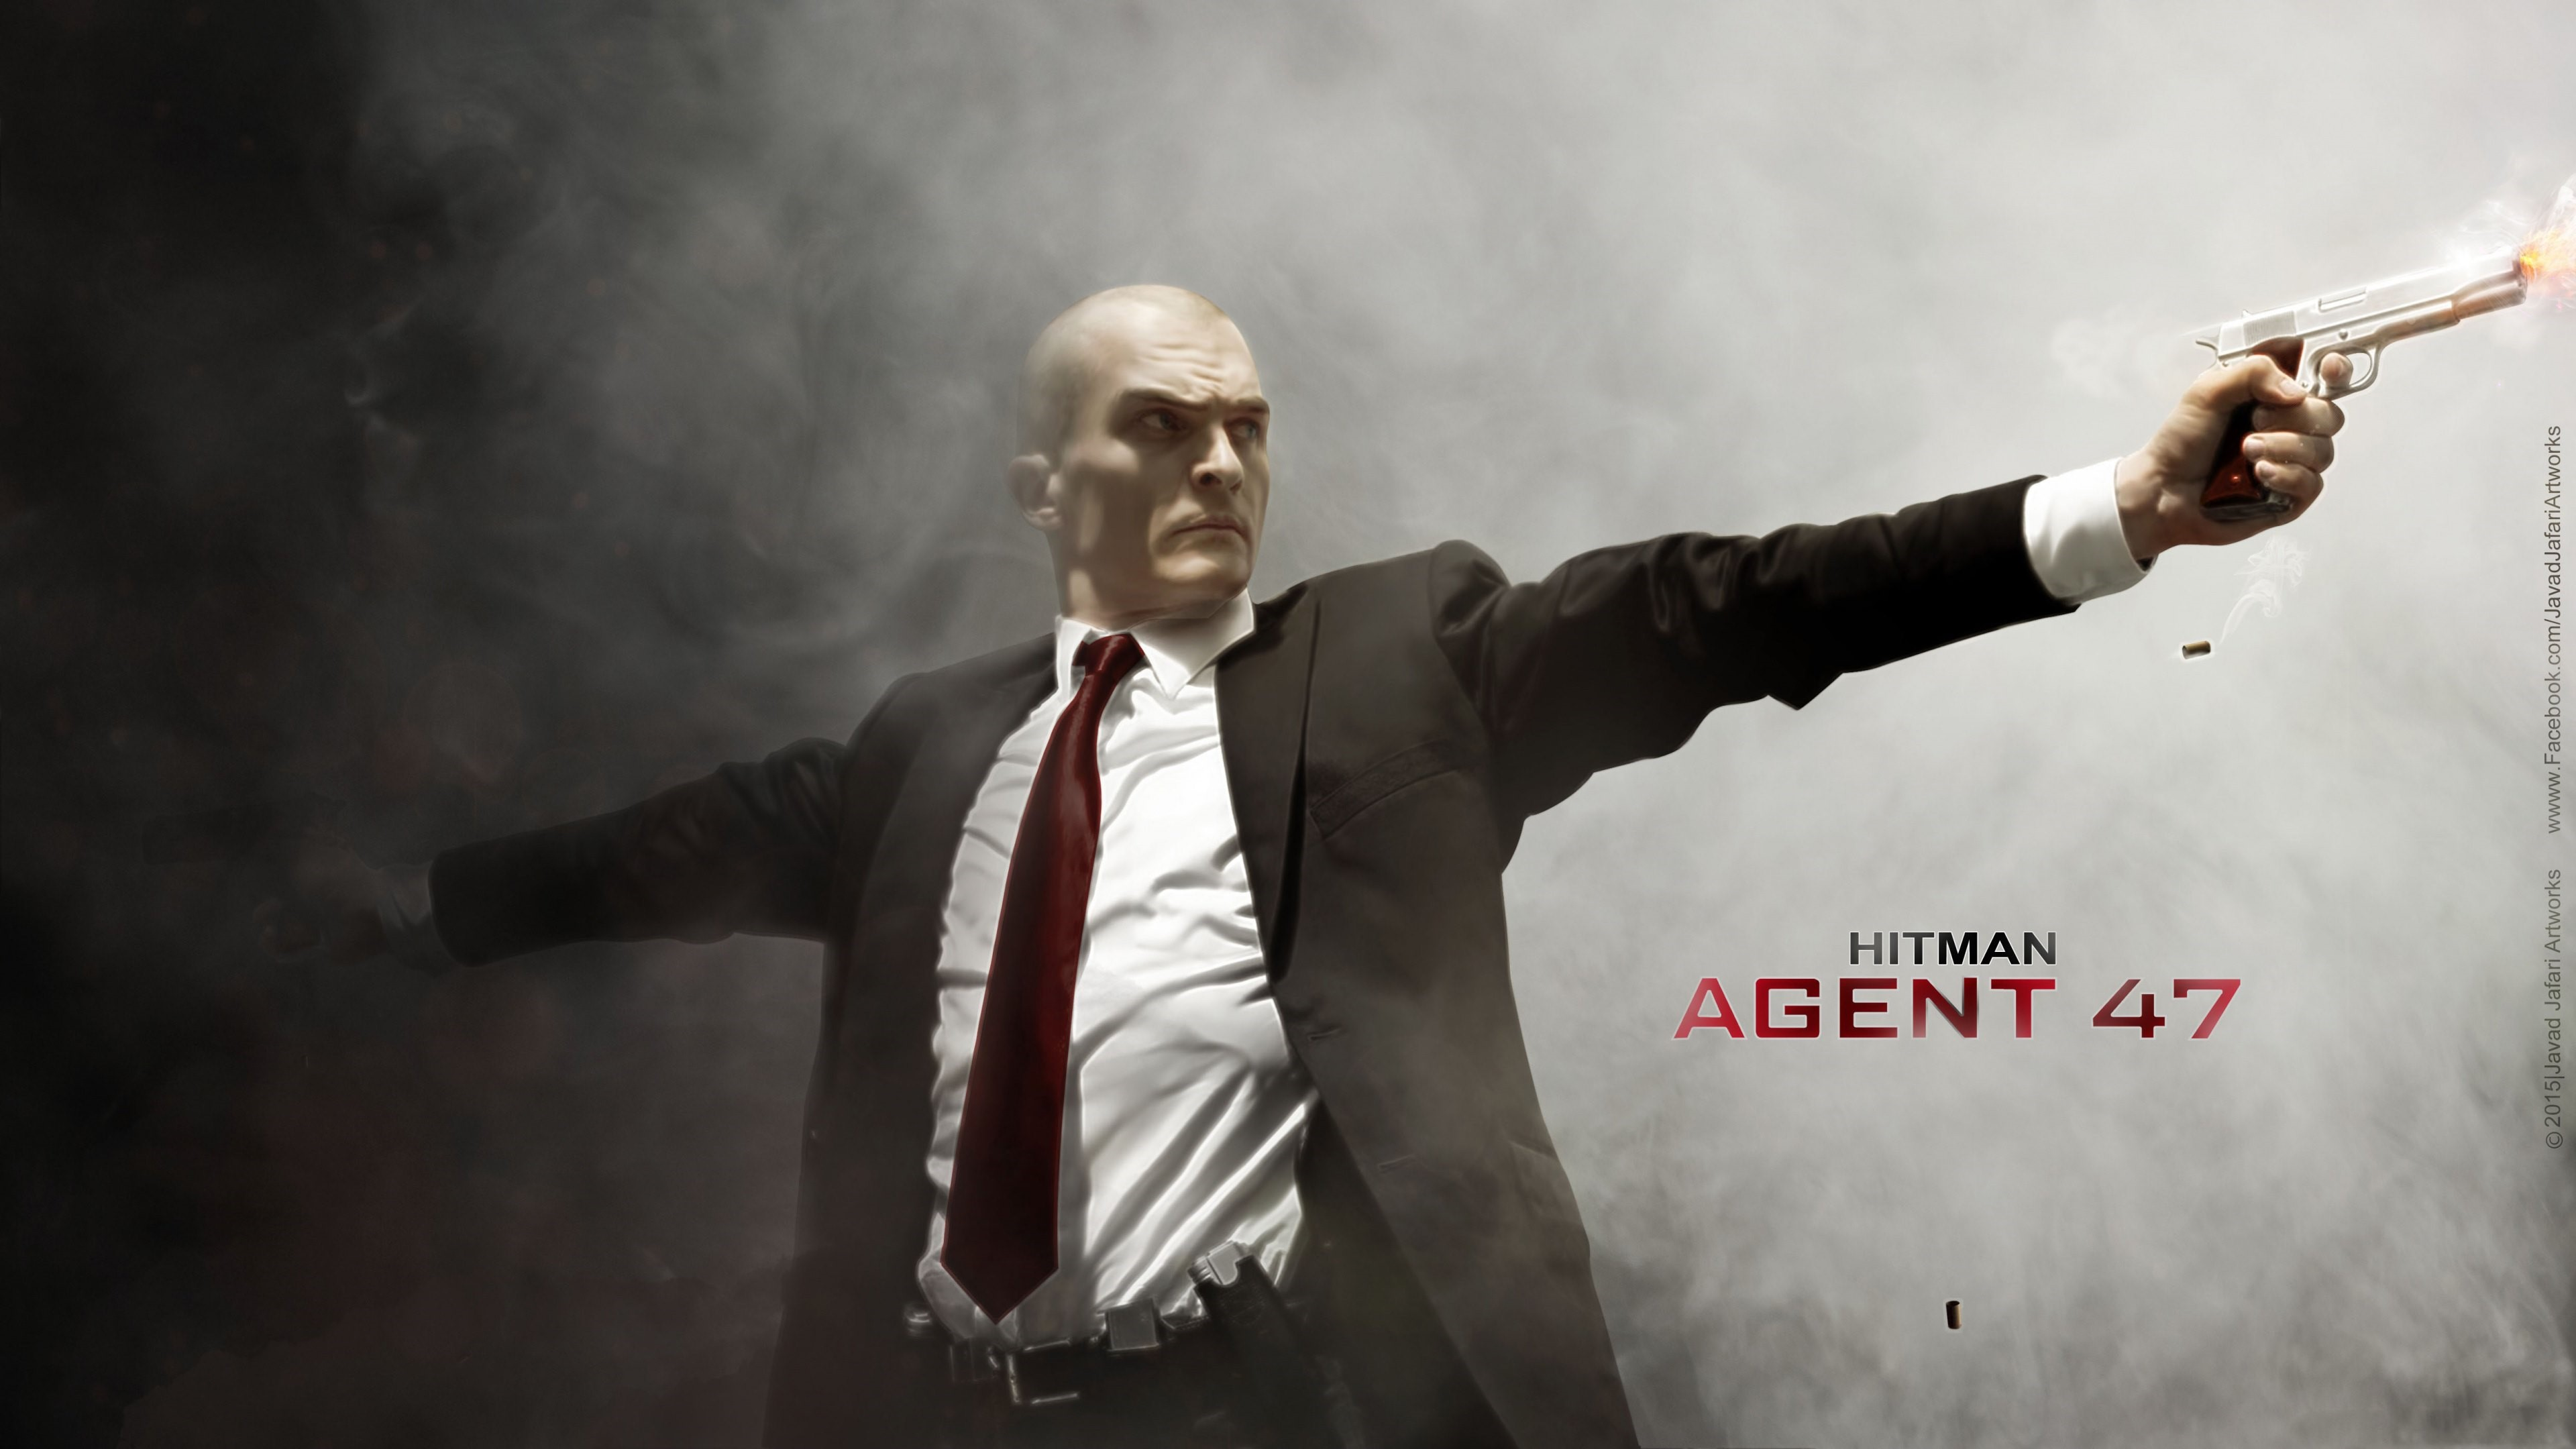 Wallpaper Fanart by Rupert Friend on Hitman Agent 47